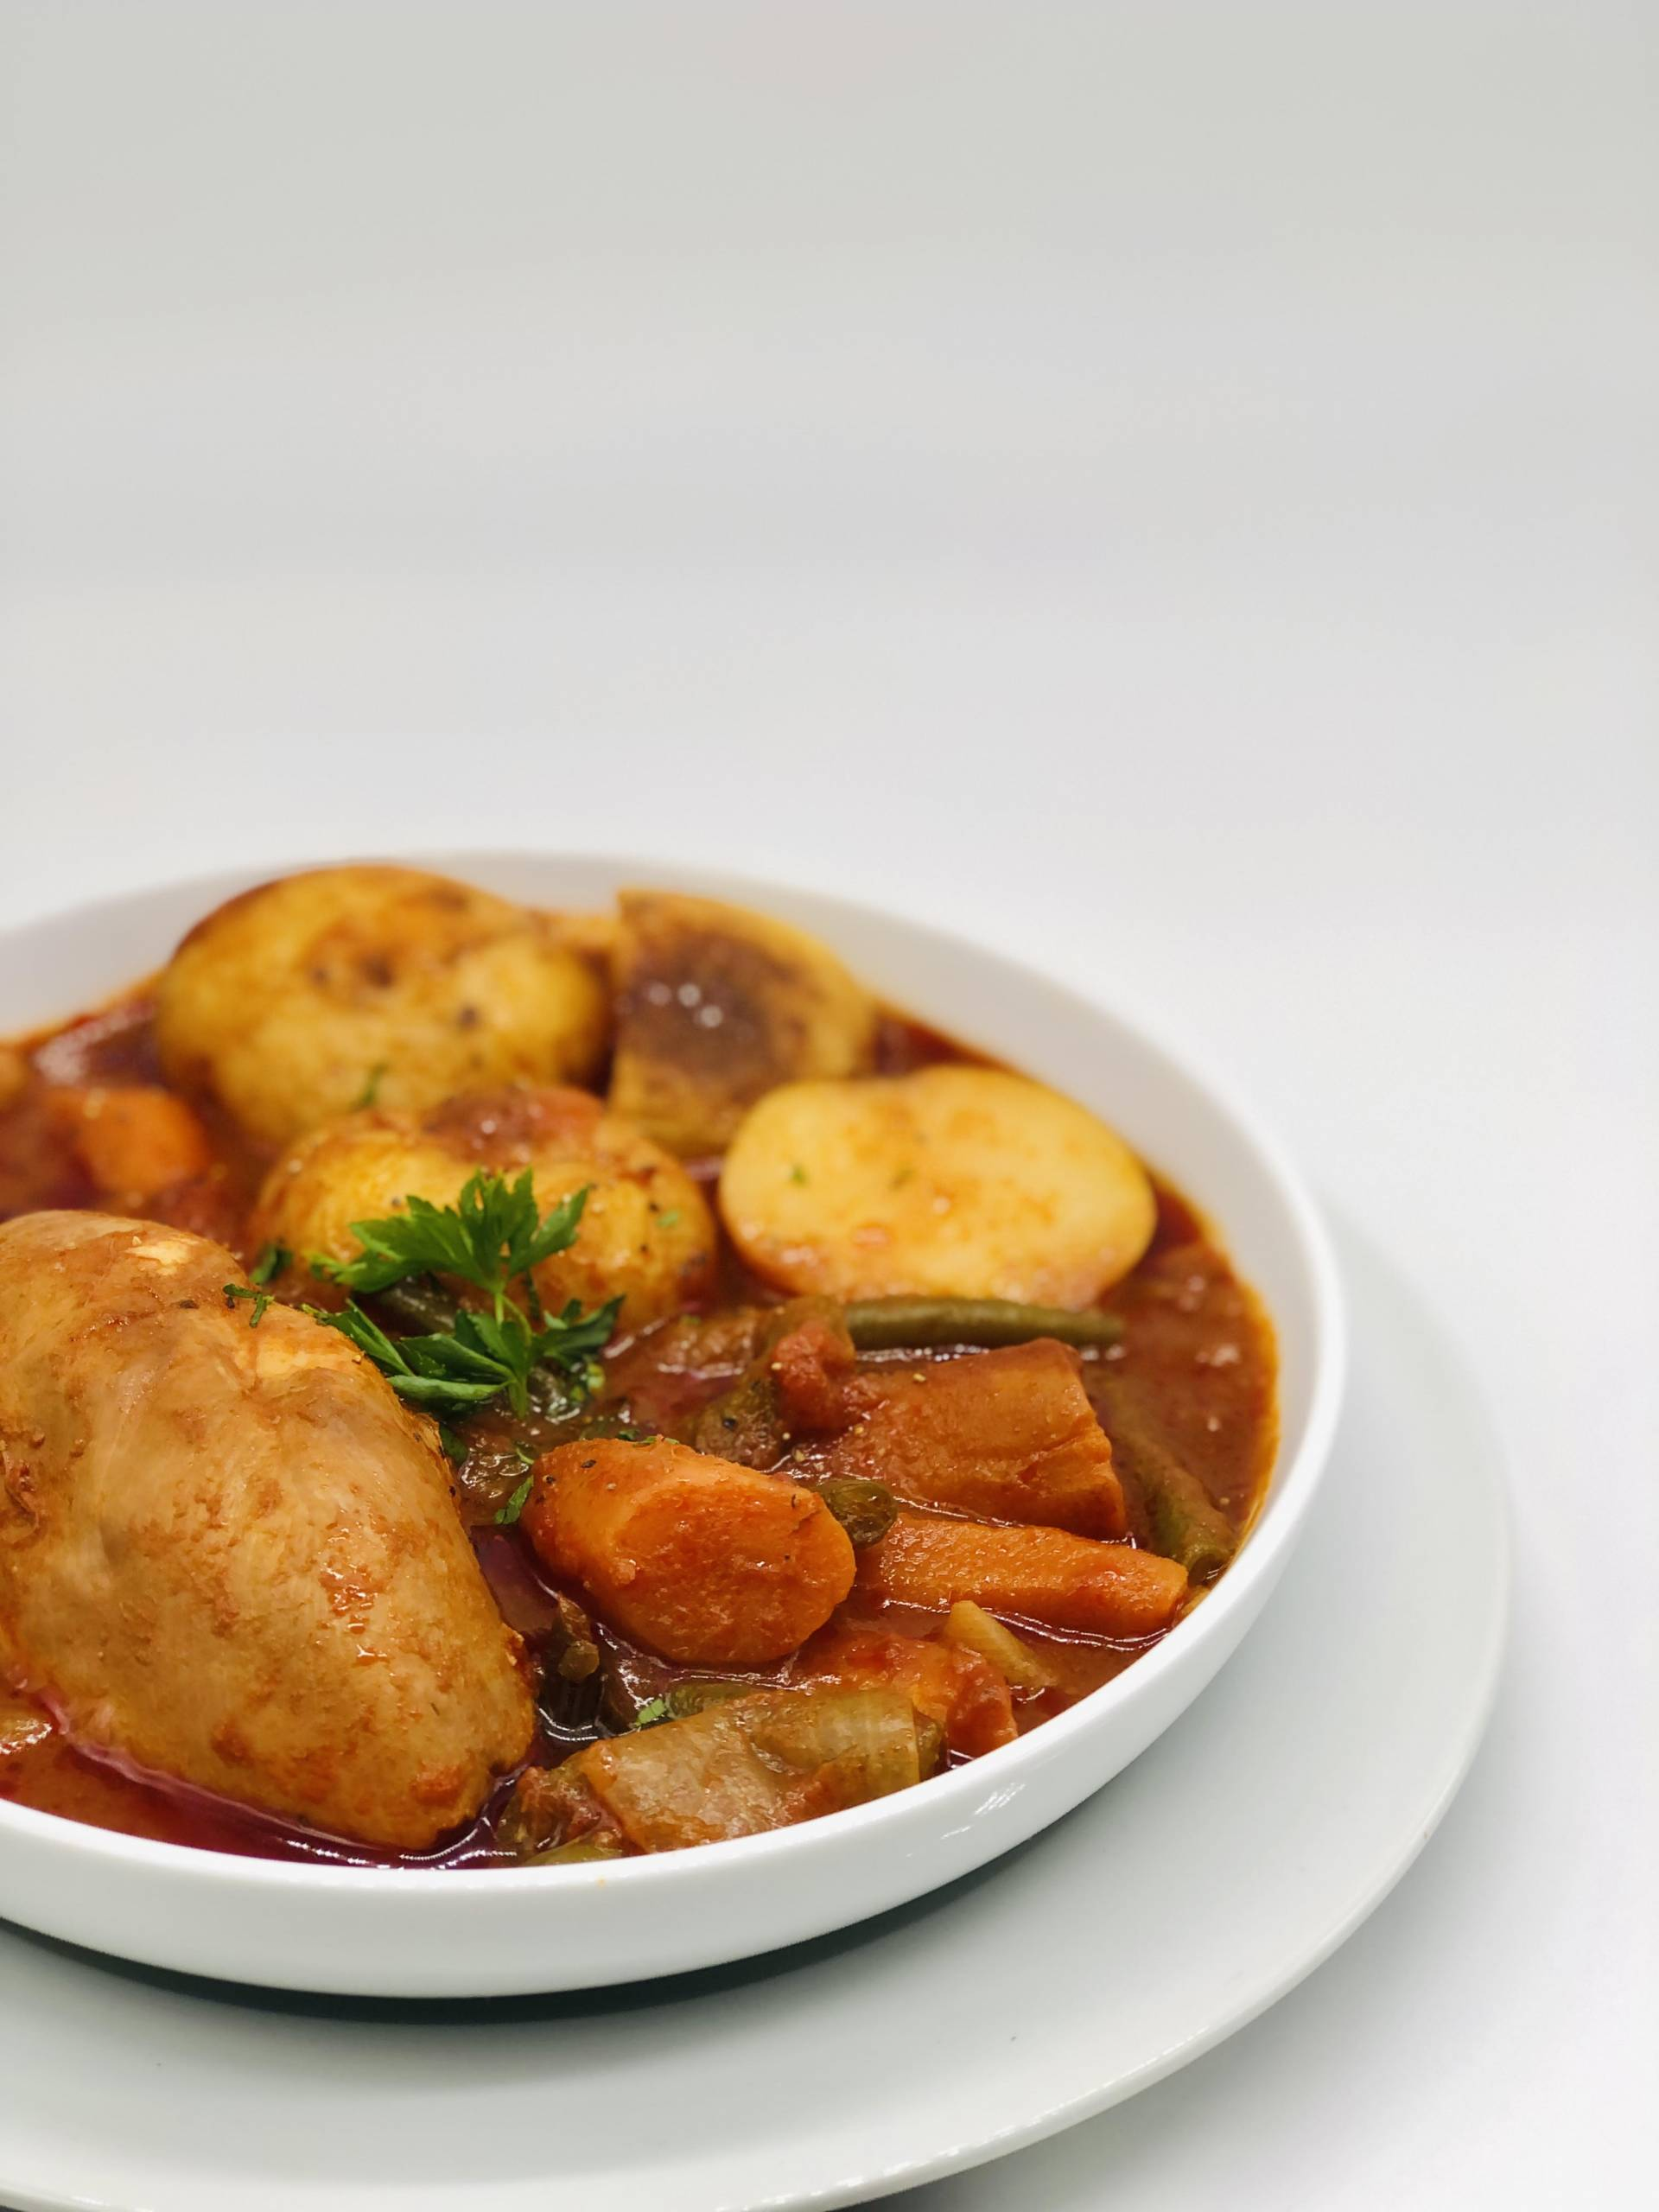 Hunter-Style Chicken| Served with Braised Vegetables and Potatoes